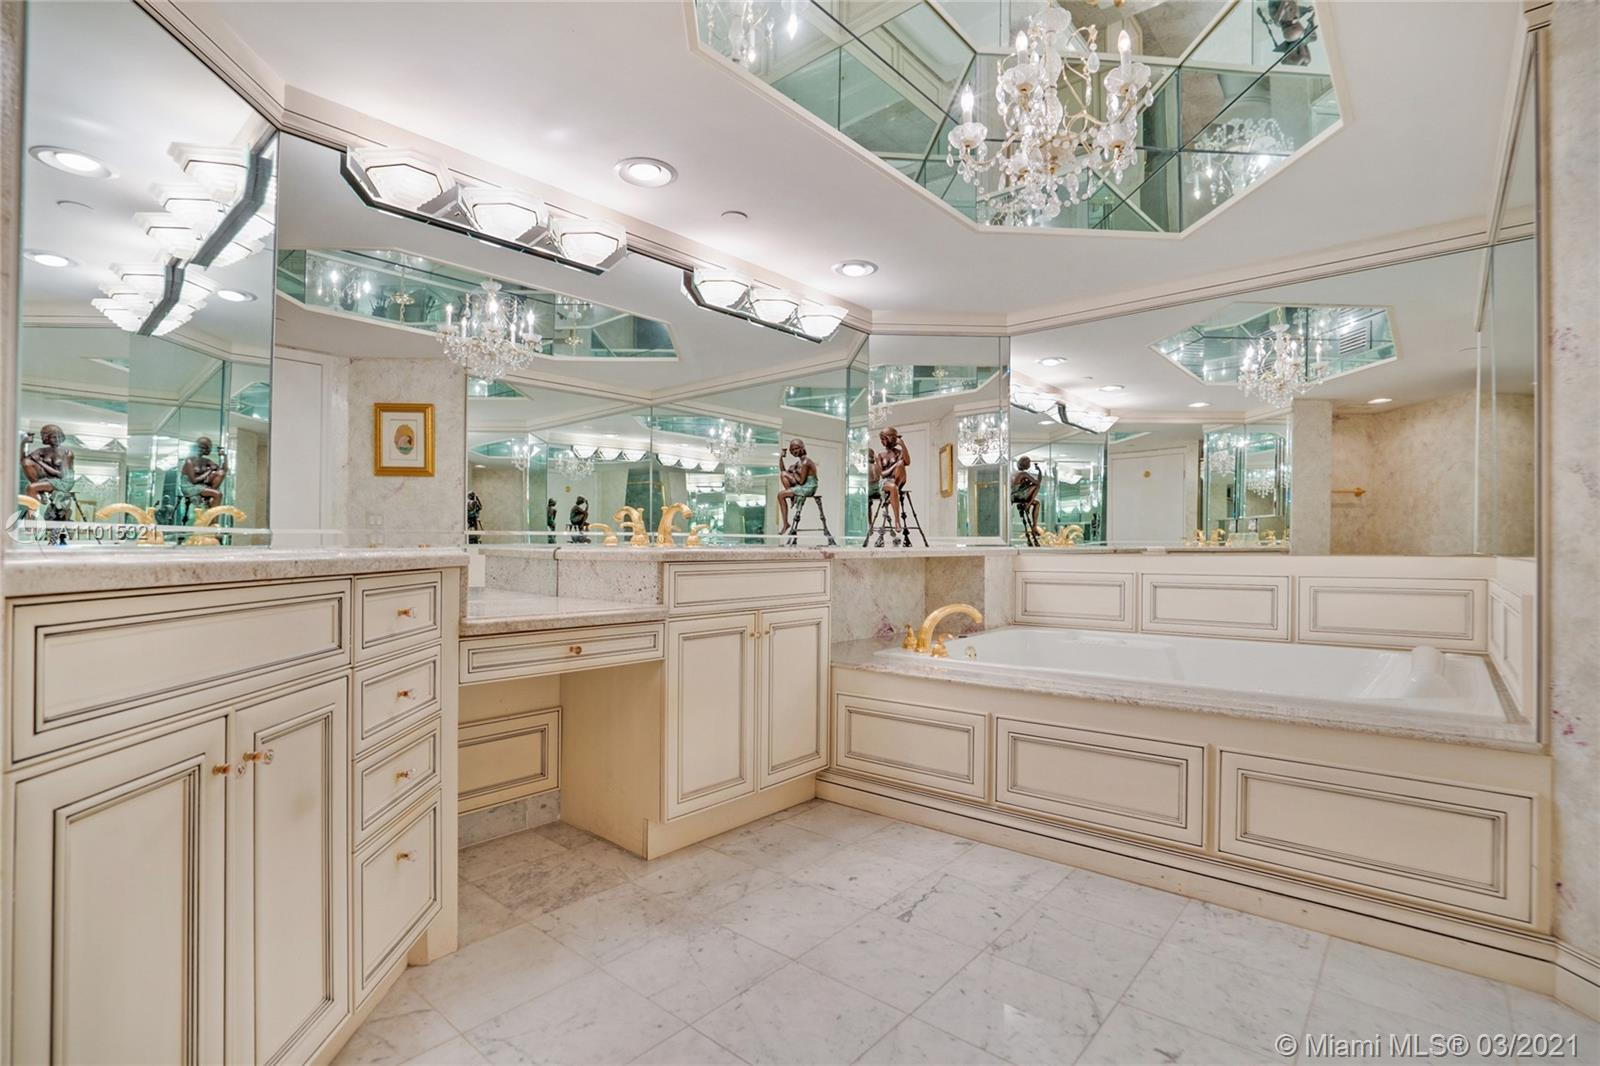 Master bathroom with double vanity, jacuzzi bath and separate shower.